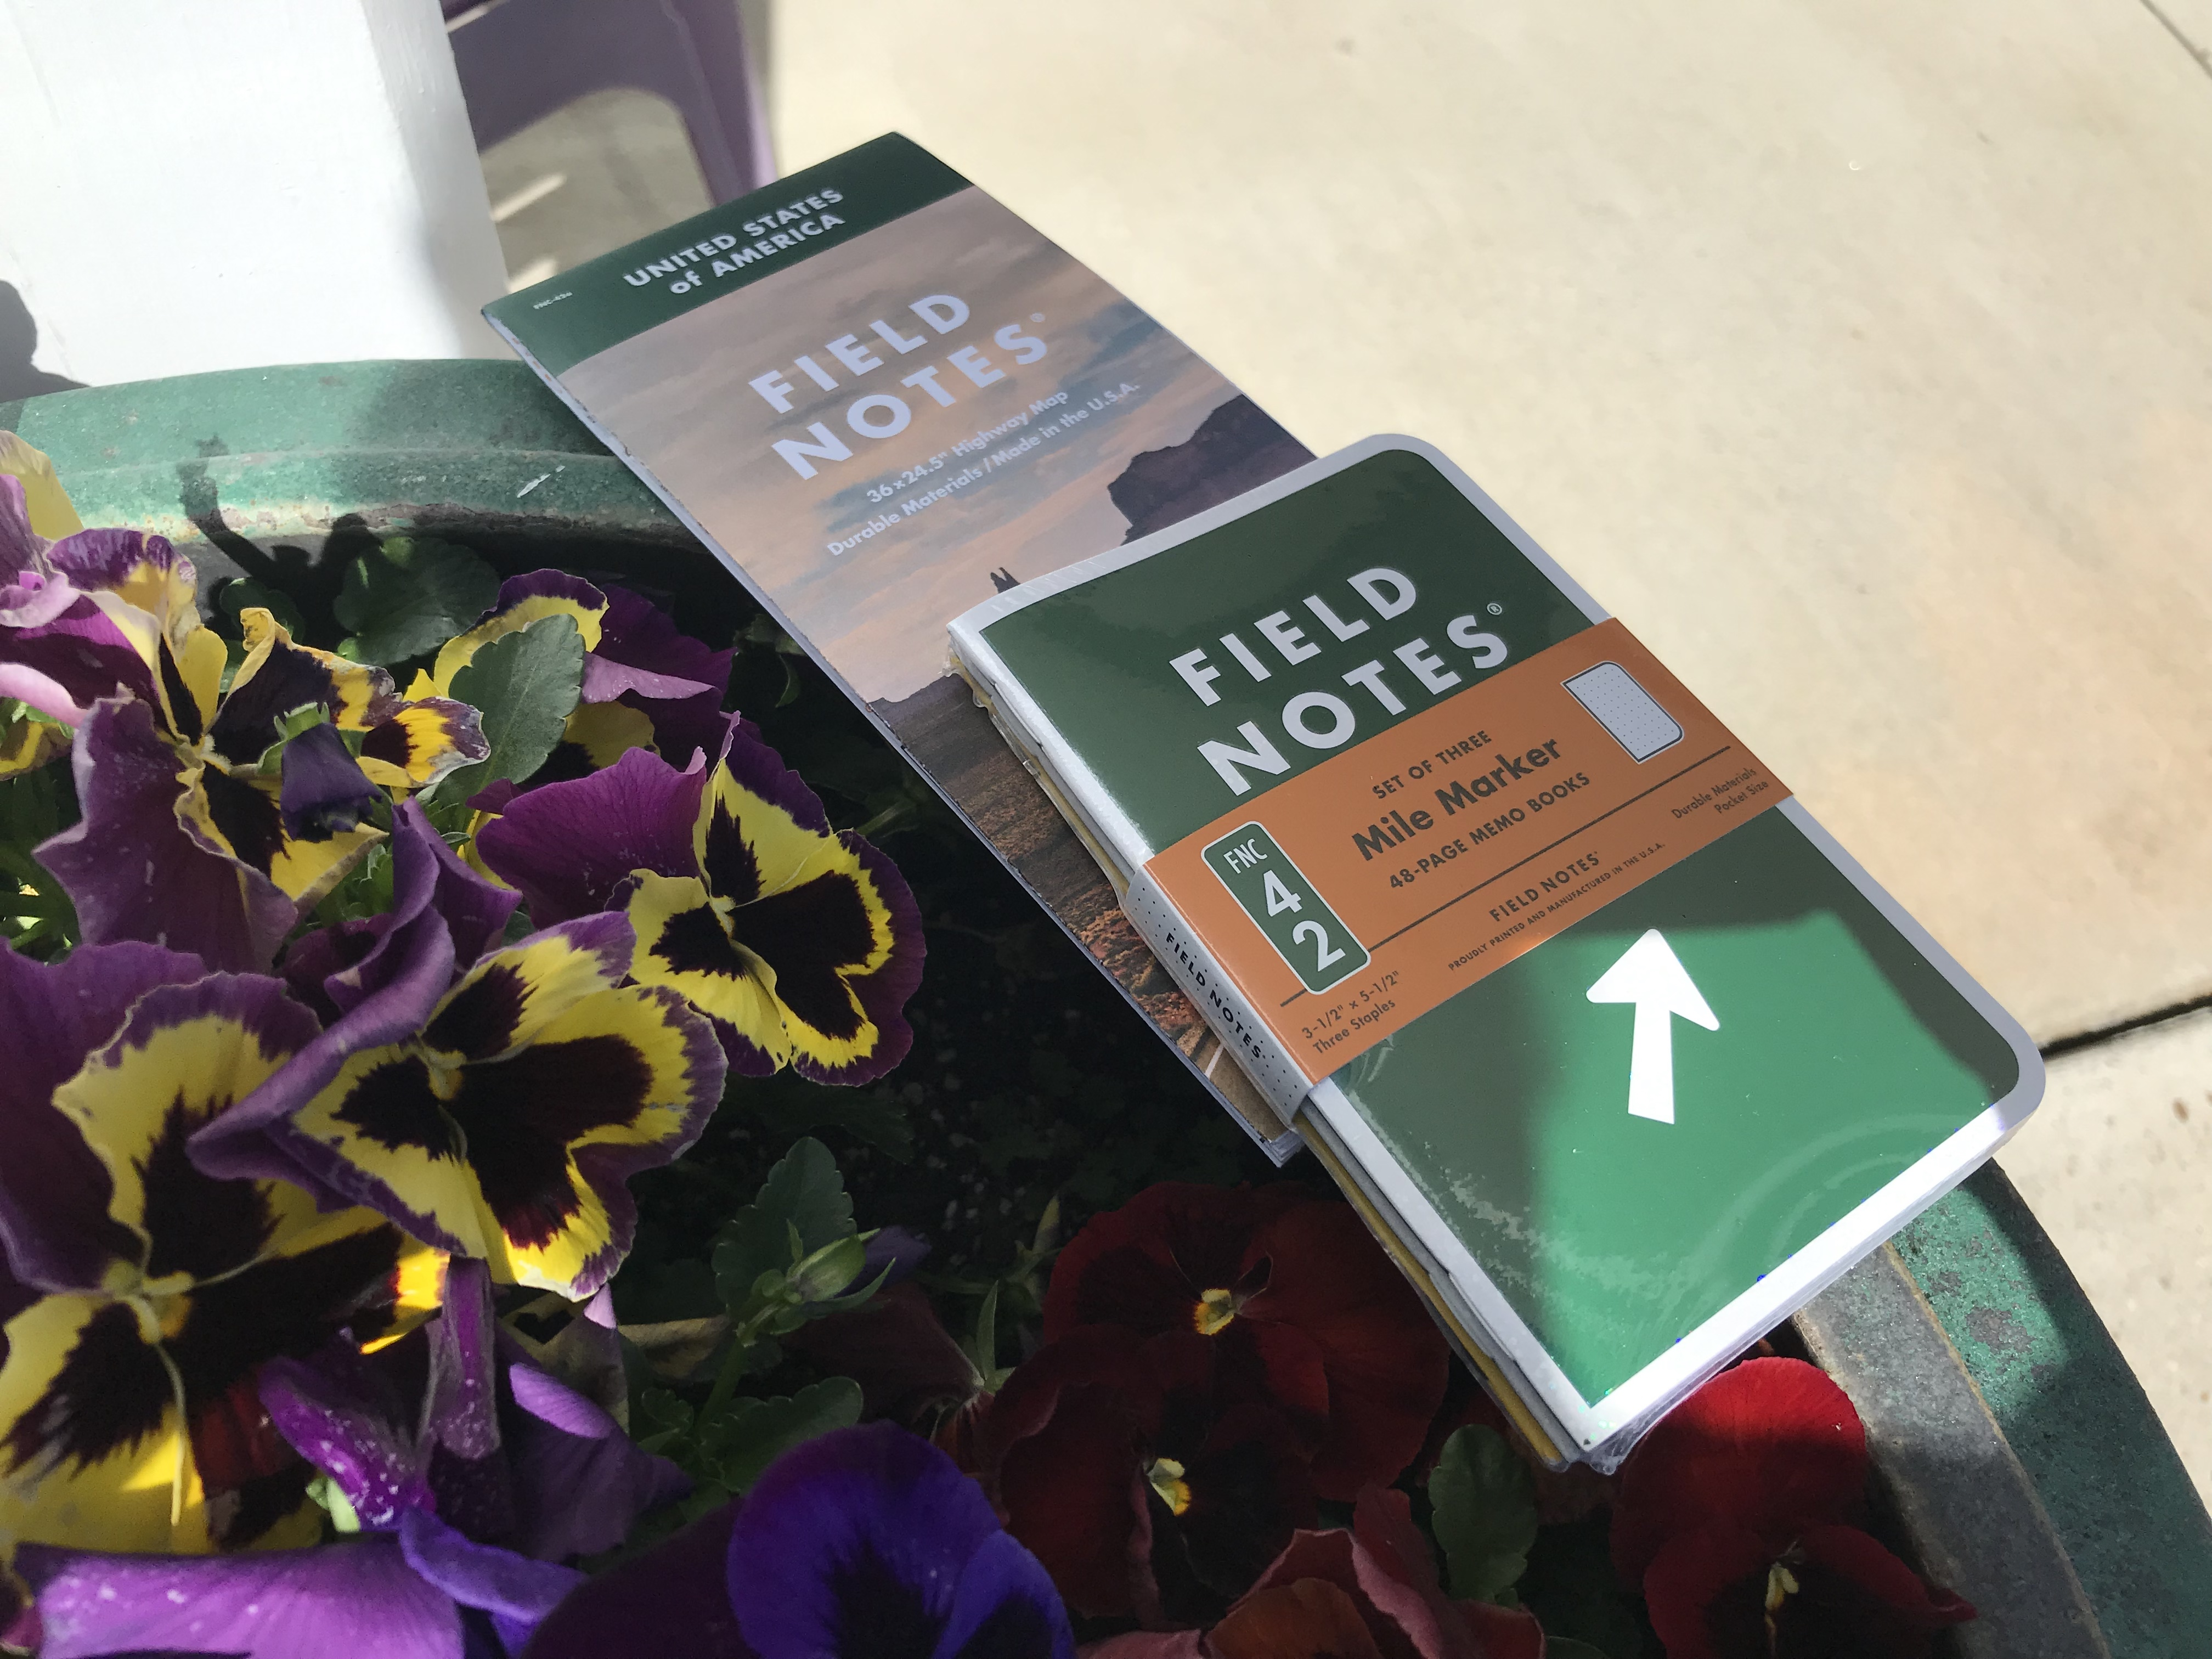 FIELD NOTES MILE MARKER AND MAP